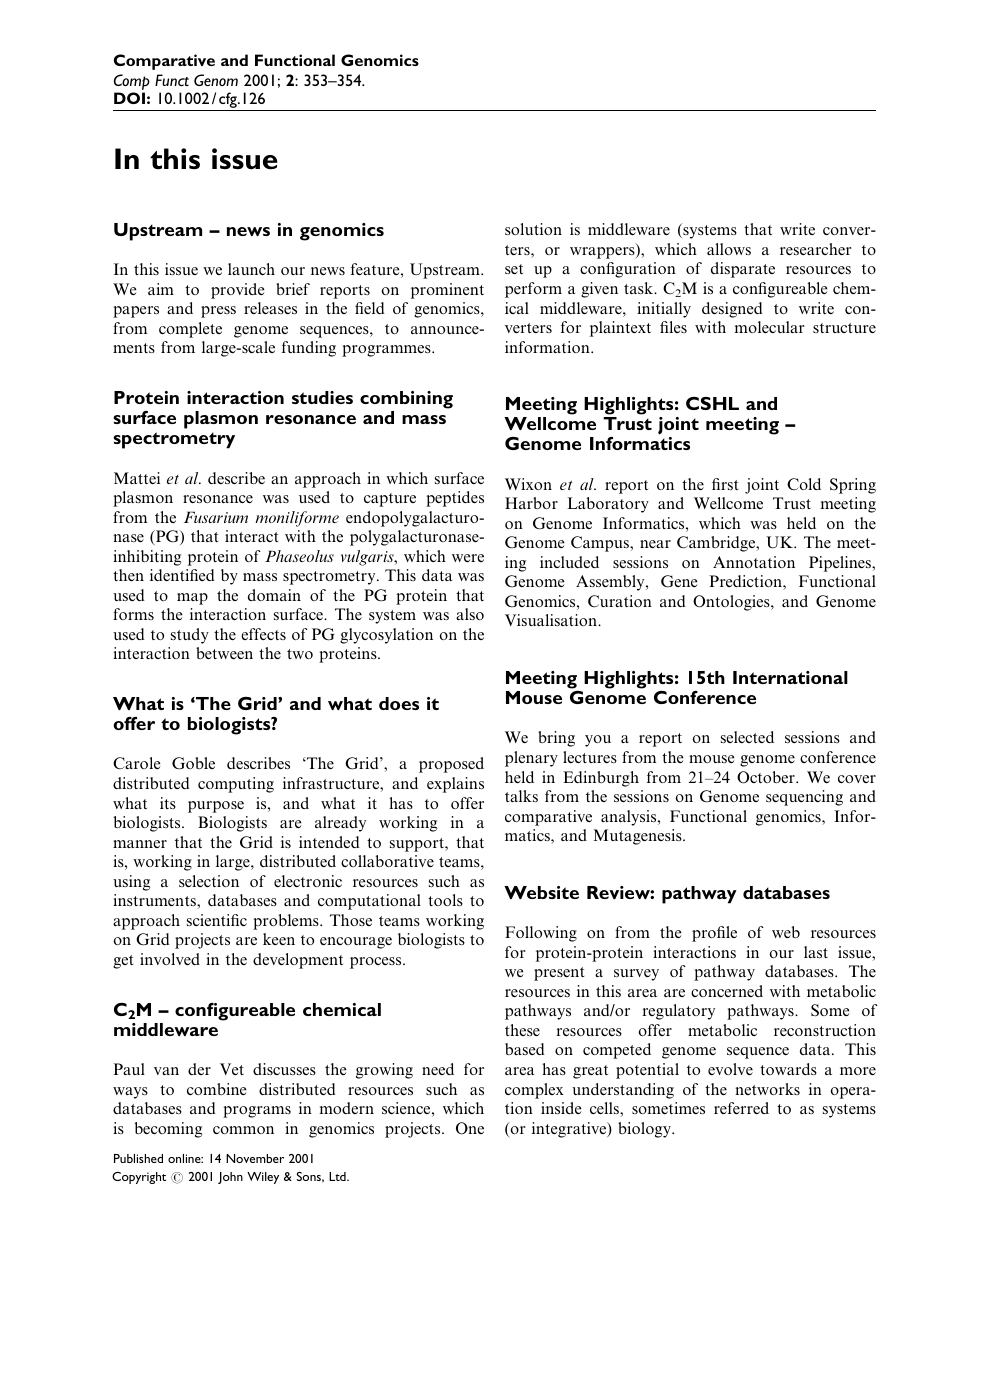 005 Interesting Research Paper Topics Biology Fearsome Cell For Evolutionary High School Full